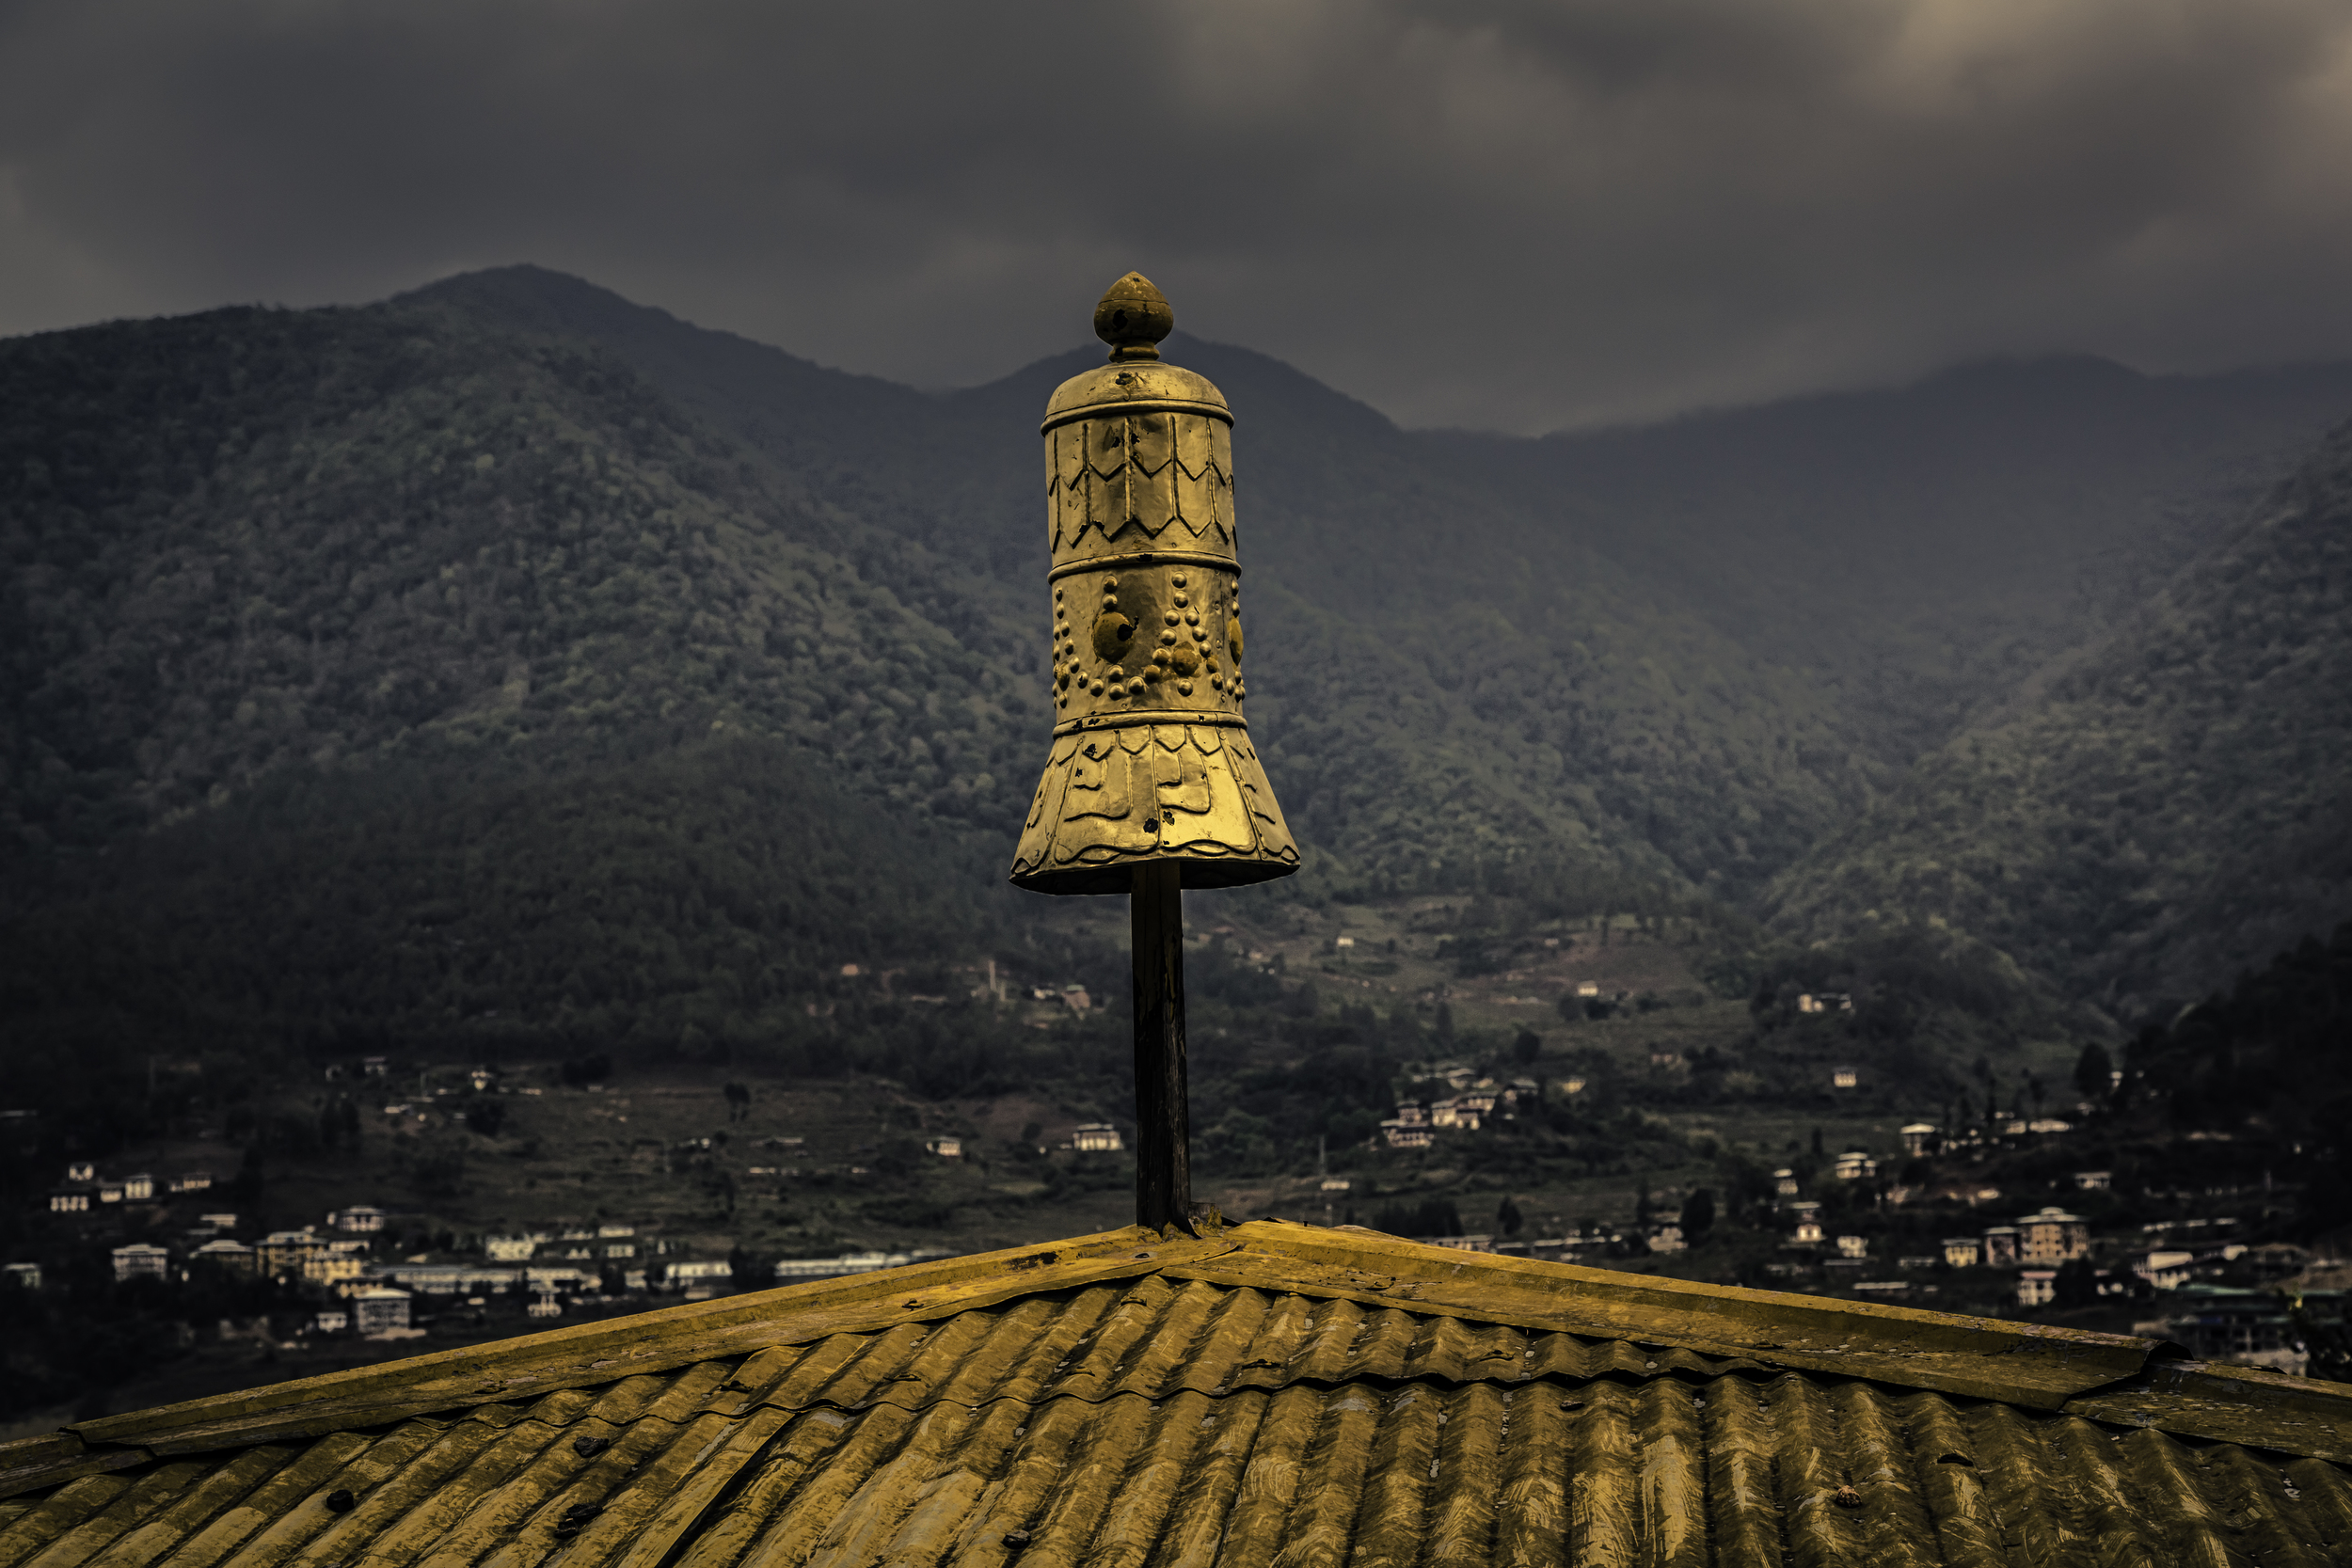 The Golden Spire of Chimi Lhakhang